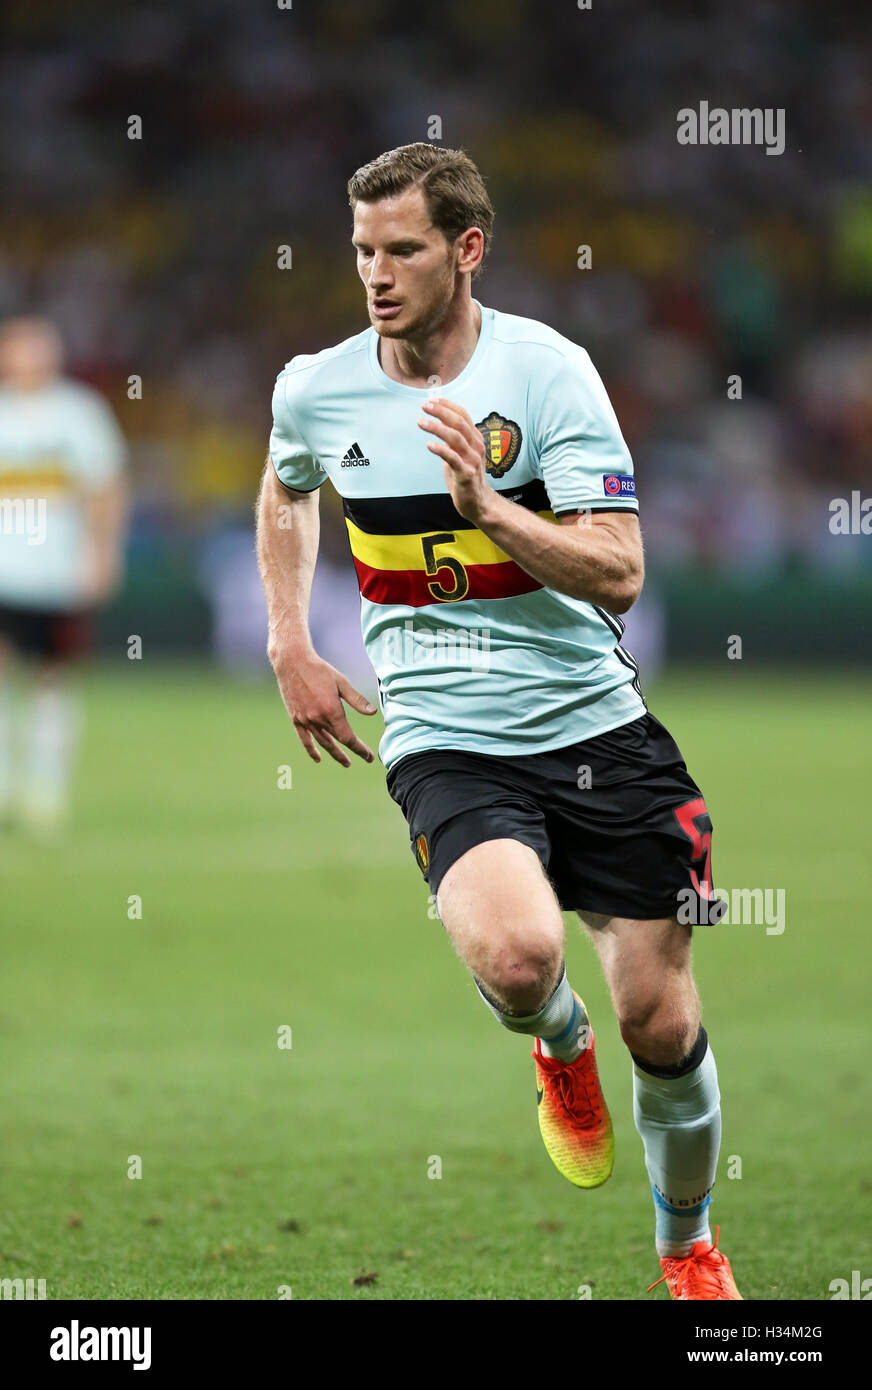 jan vertonghen belgium stock photos jan vertonghen belgium stock images alamy. Black Bedroom Furniture Sets. Home Design Ideas